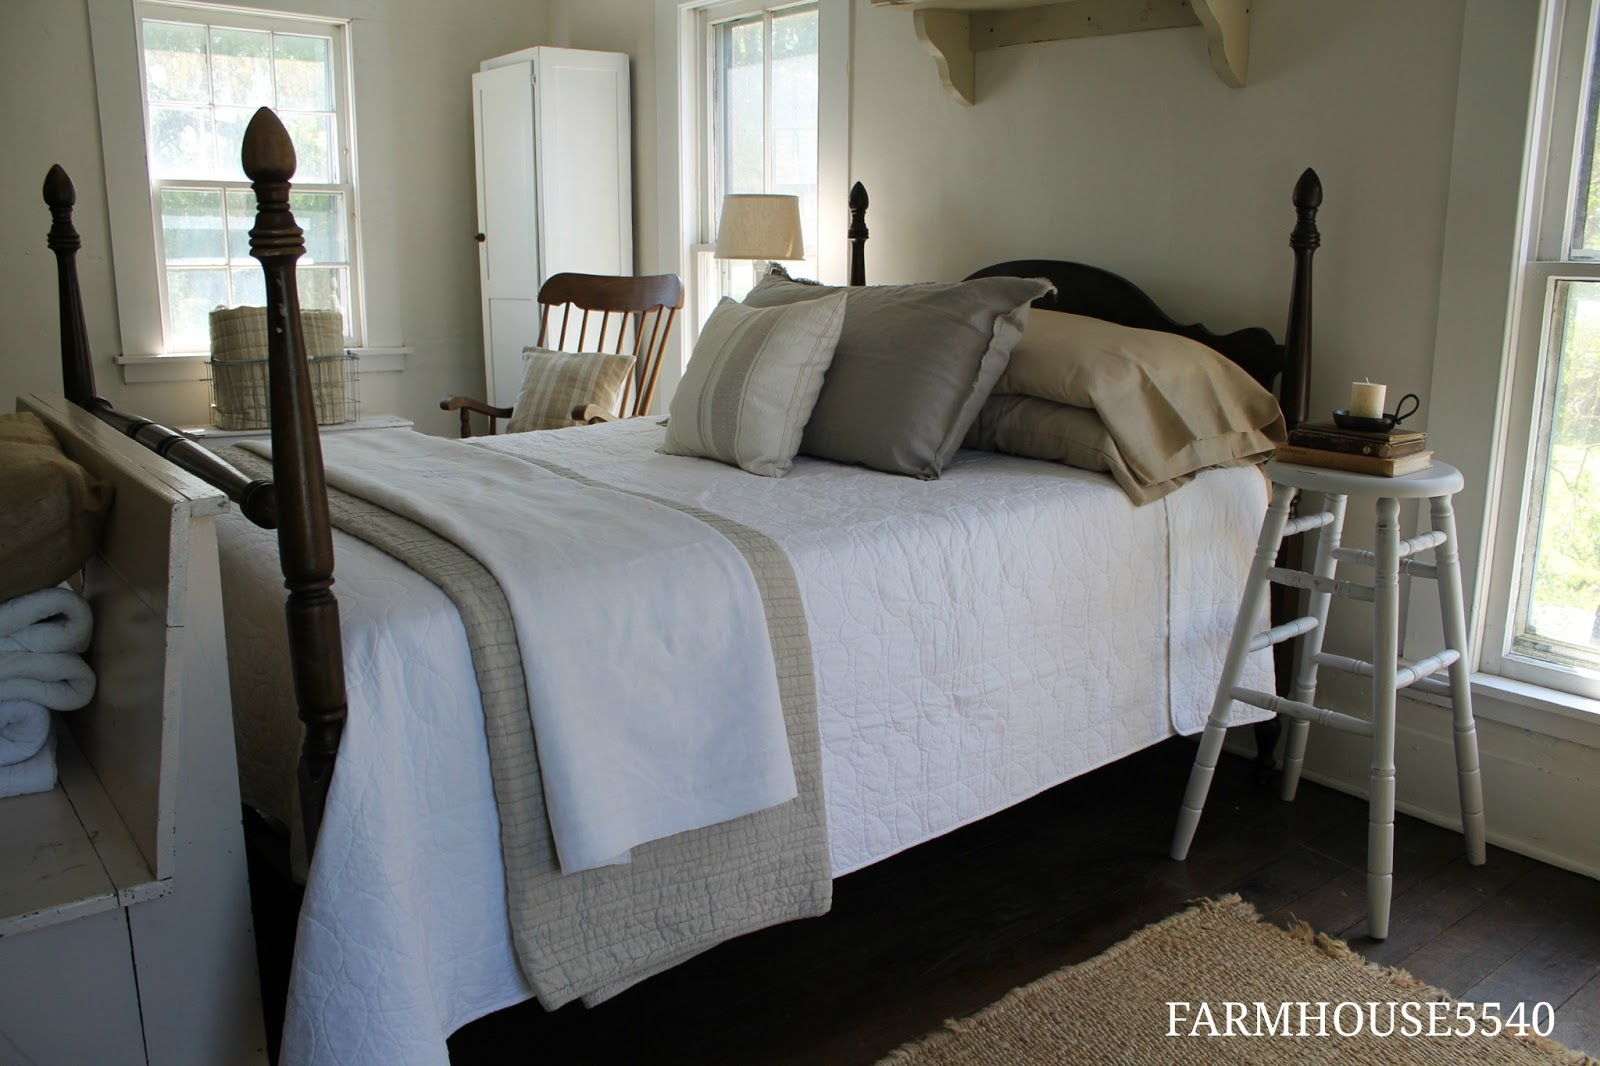 FARMHOUSE 5540: Guest Bedroom Reveal